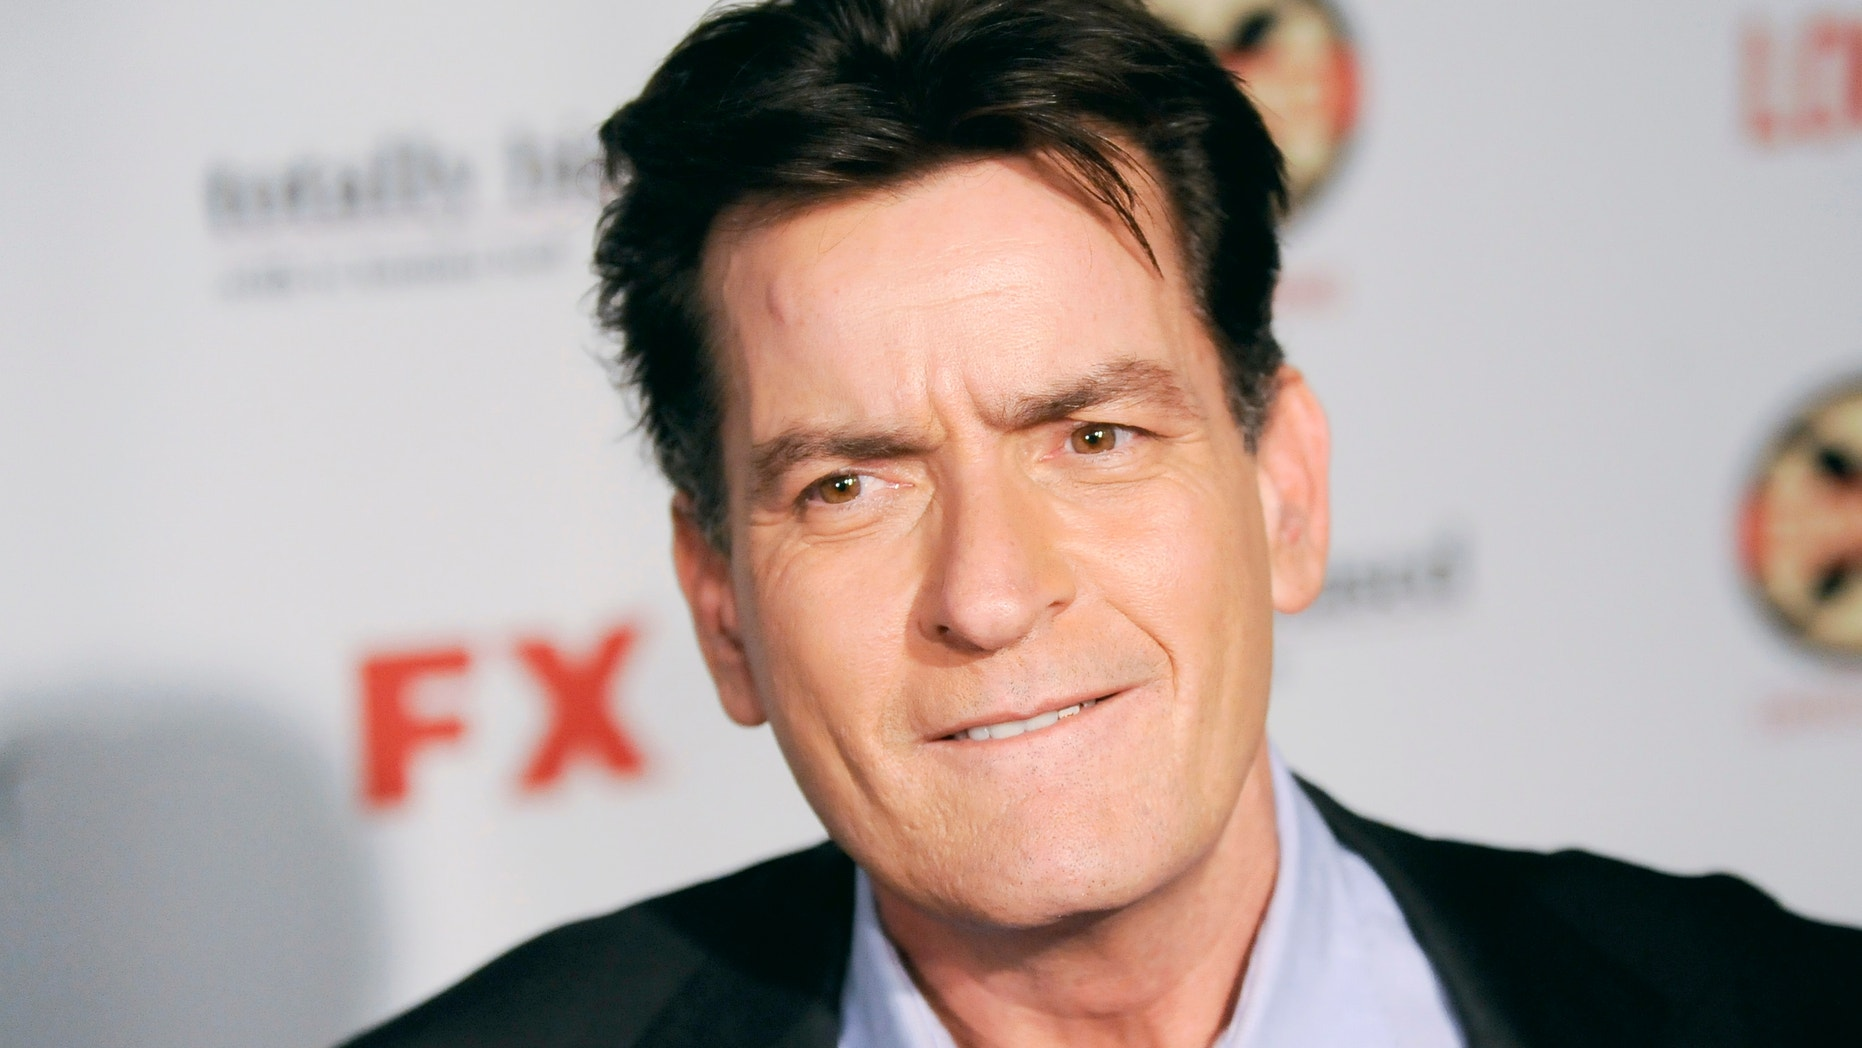 Actor Charlie Sheen arrives at the Hollywood FX Summer Comedies Party in Los Angeles, California June 26, 2012.